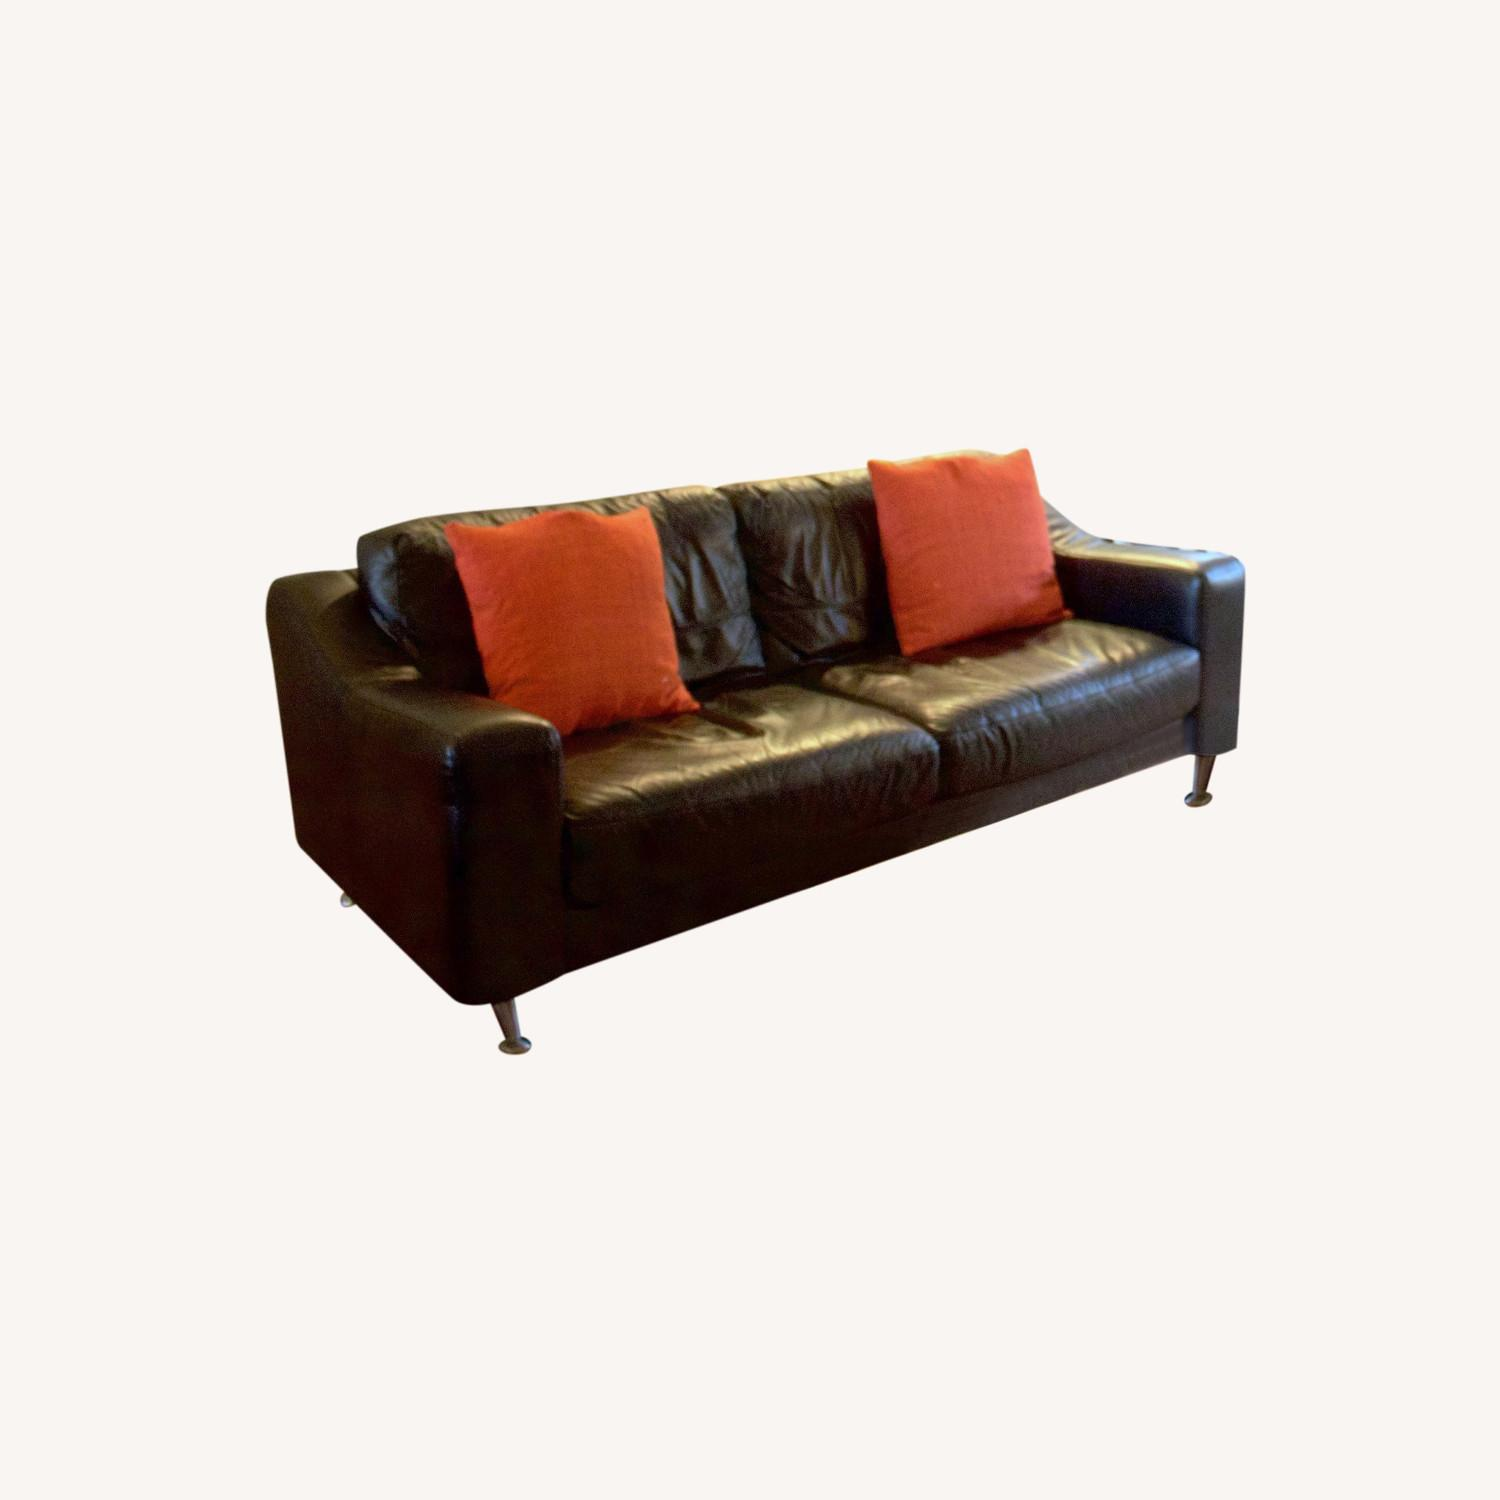 Scandinavian Design Leather Couch - image-0